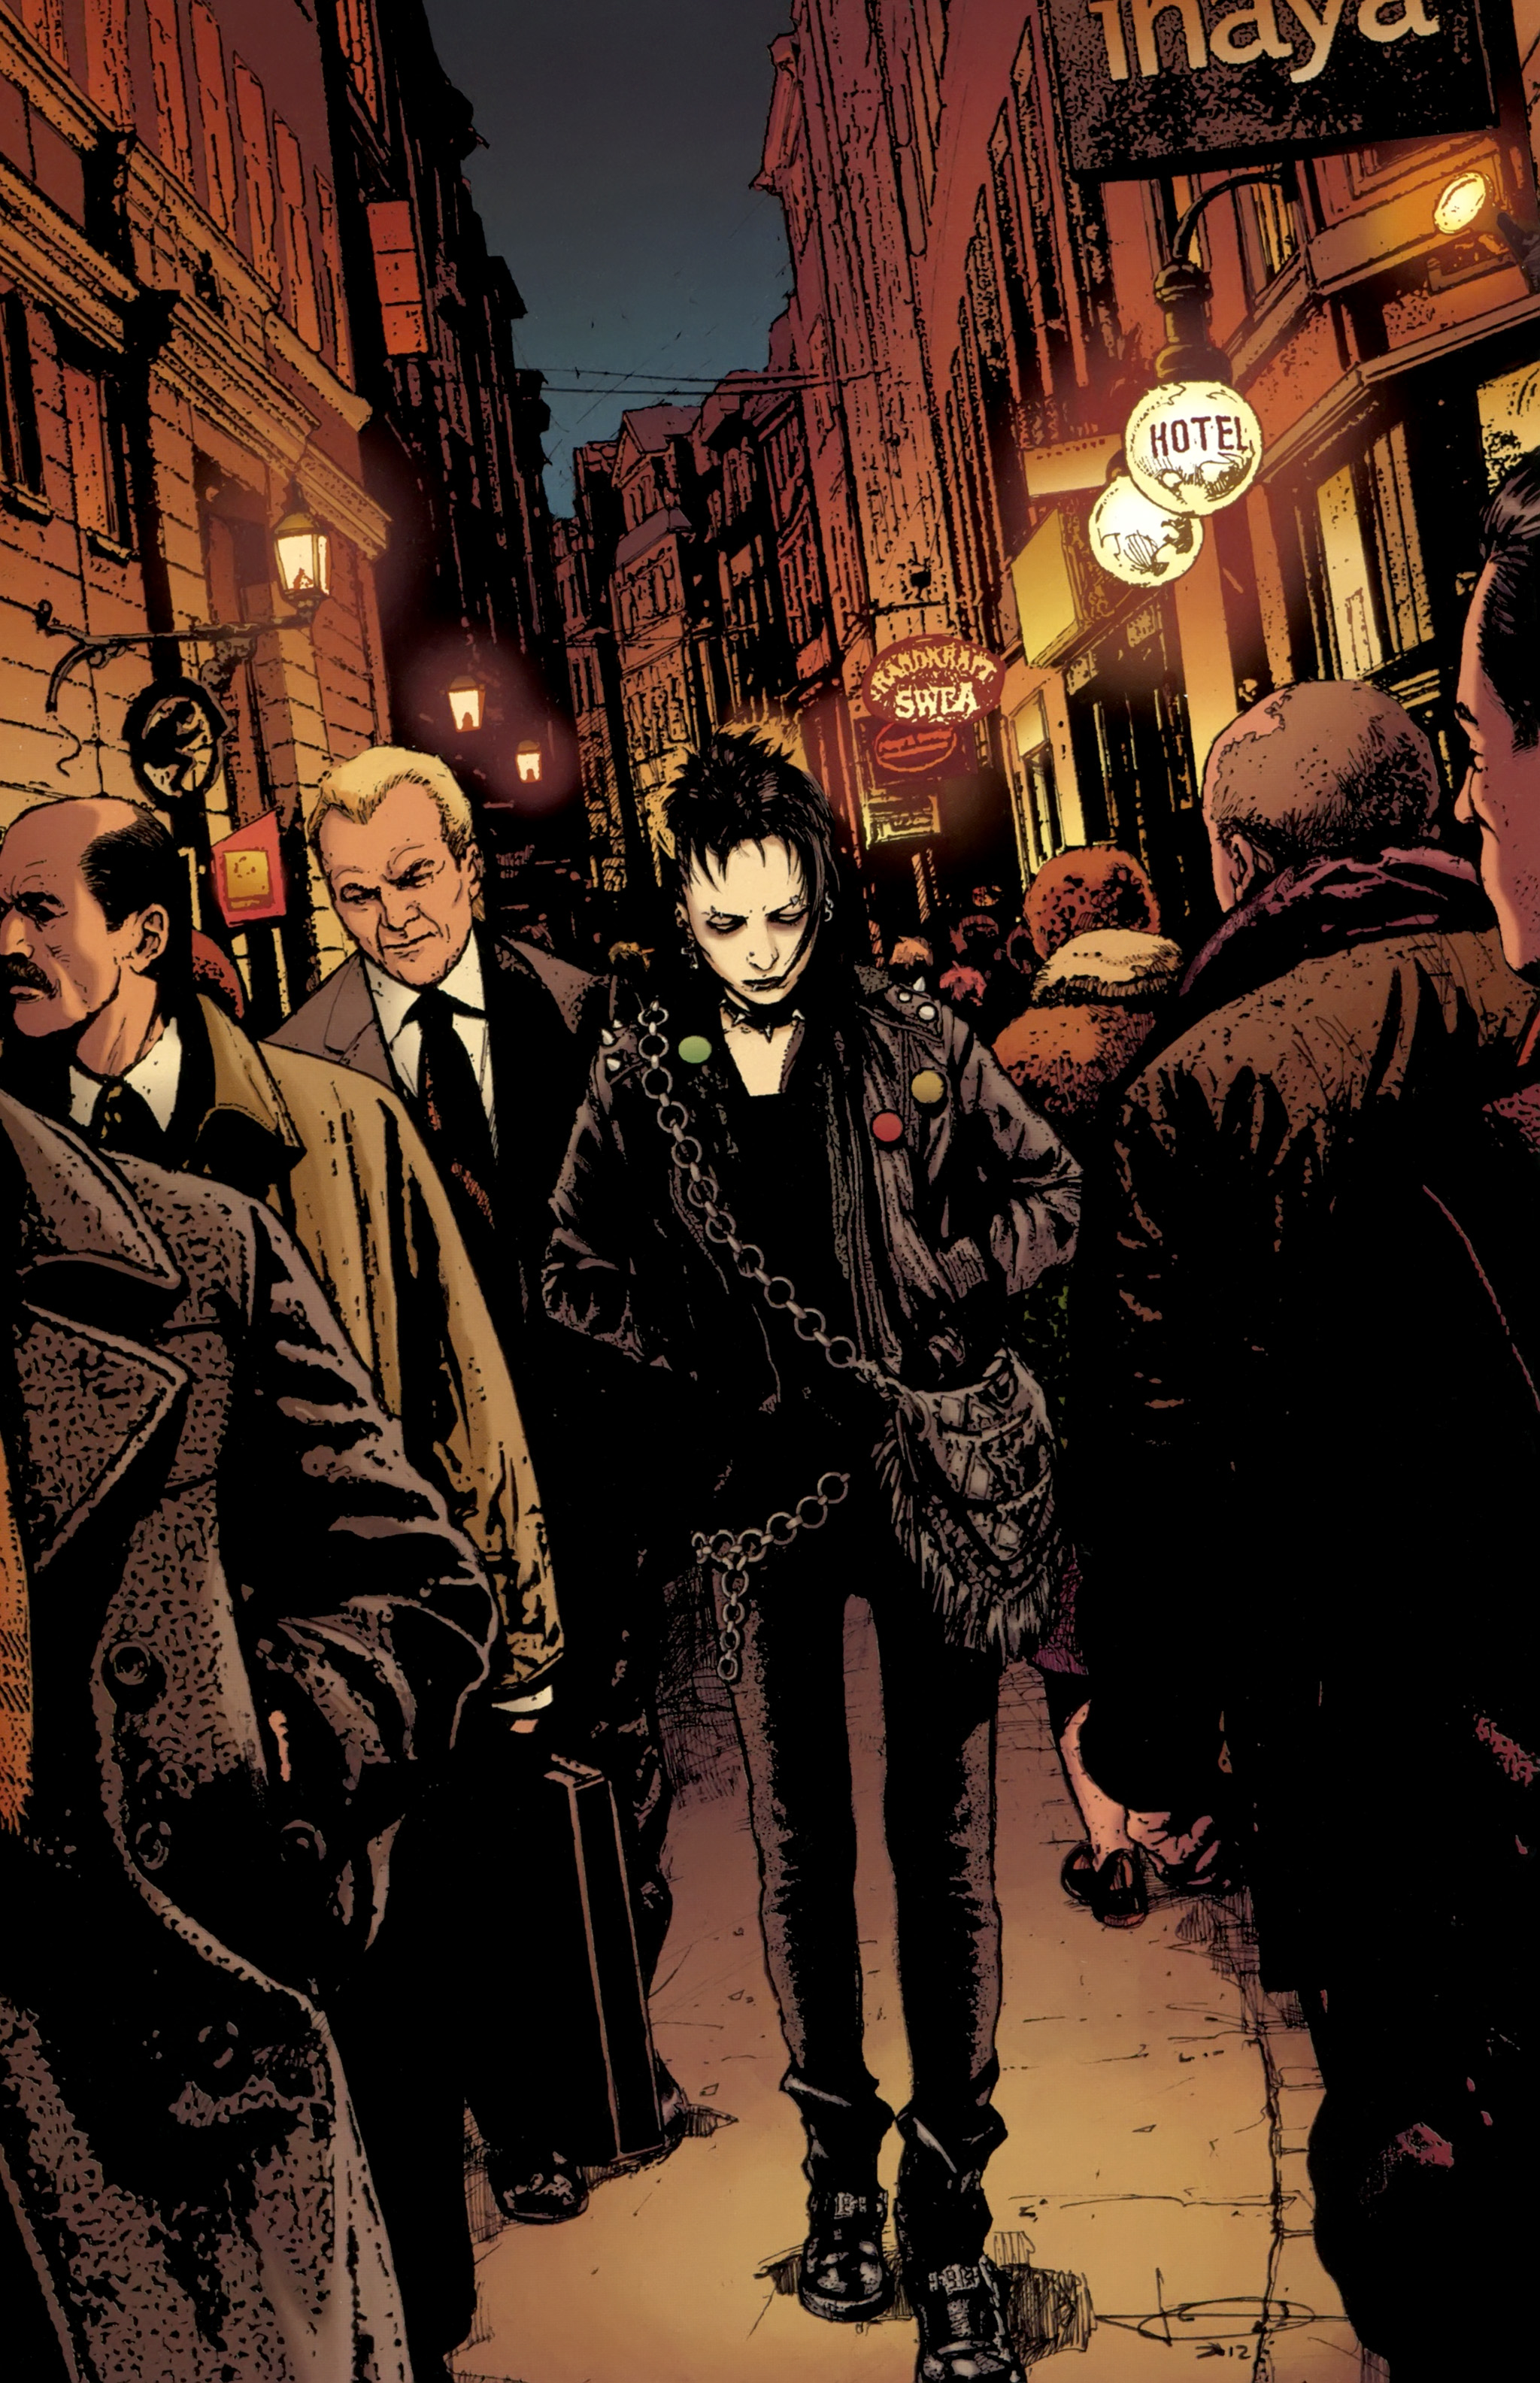 Read online The Girl With the Dragon Tattoo comic -  Issue # TPB 1 - 75